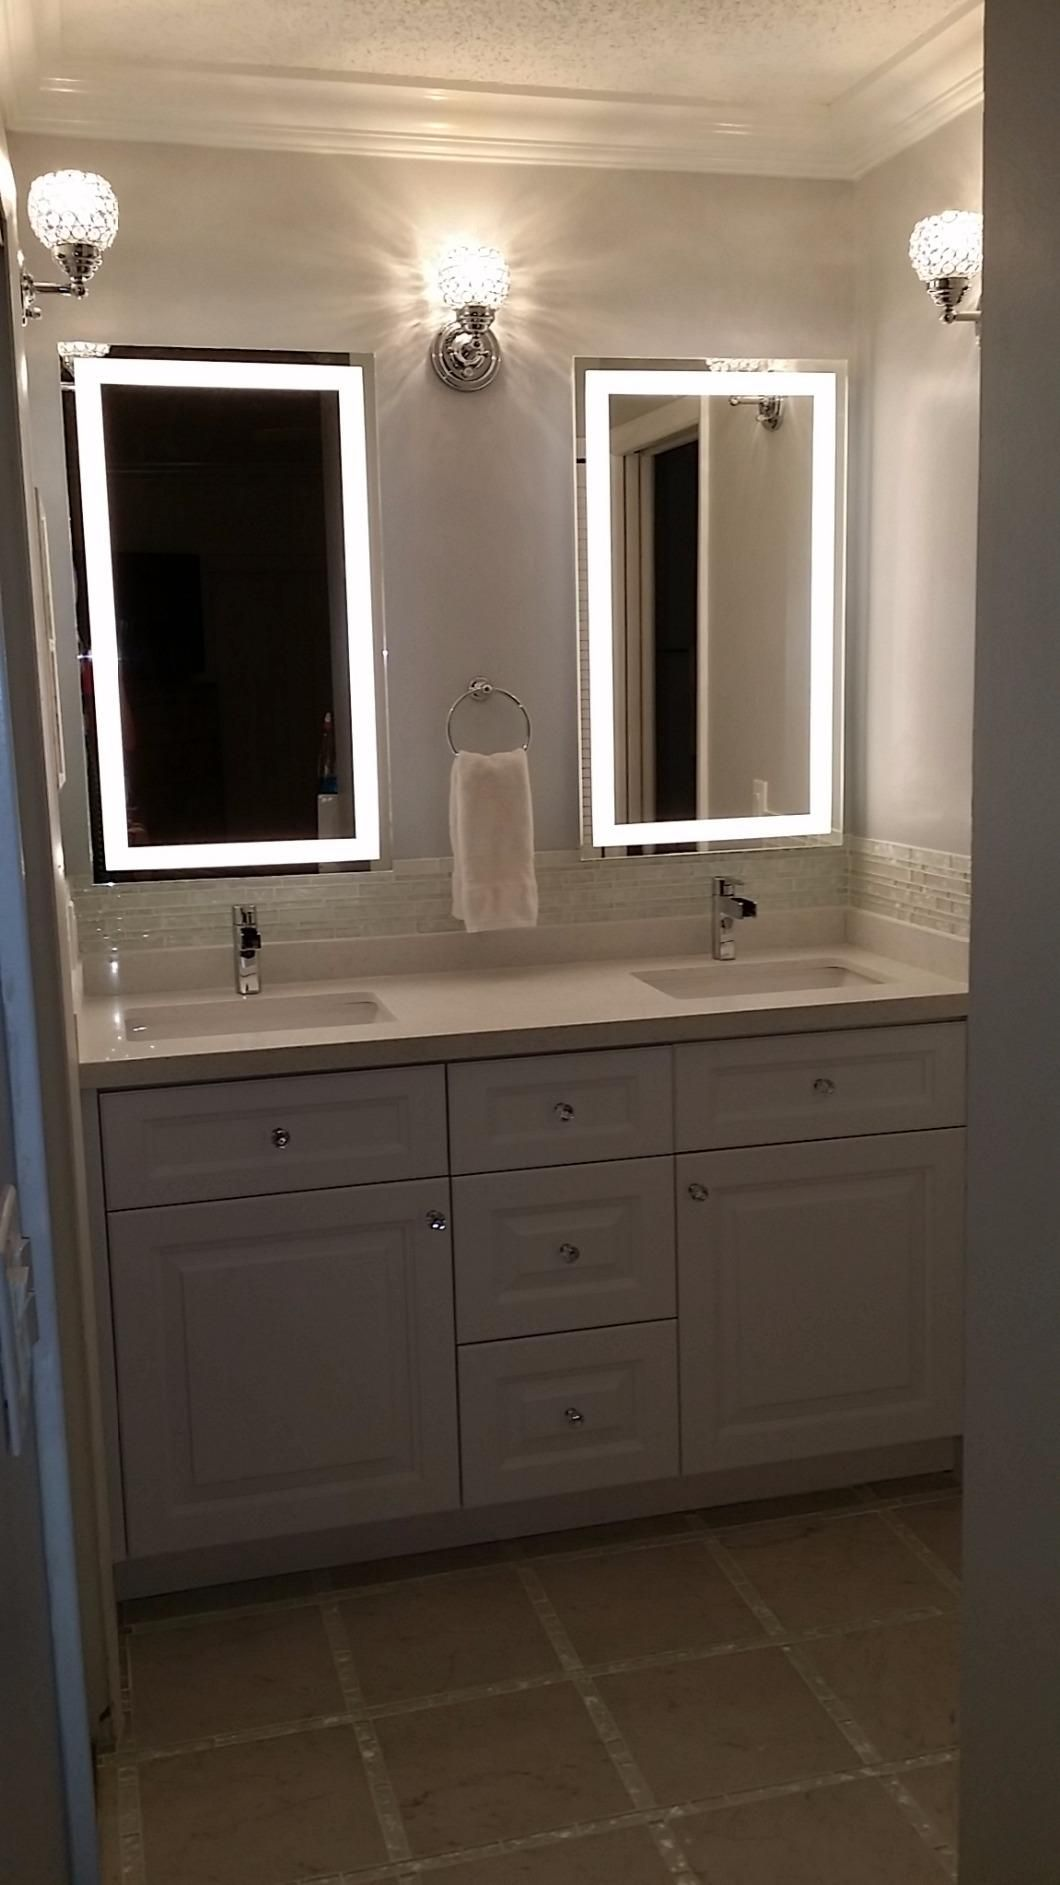 Wall Mounted Lighted Vanity Mirror LED MAM mercial Grade